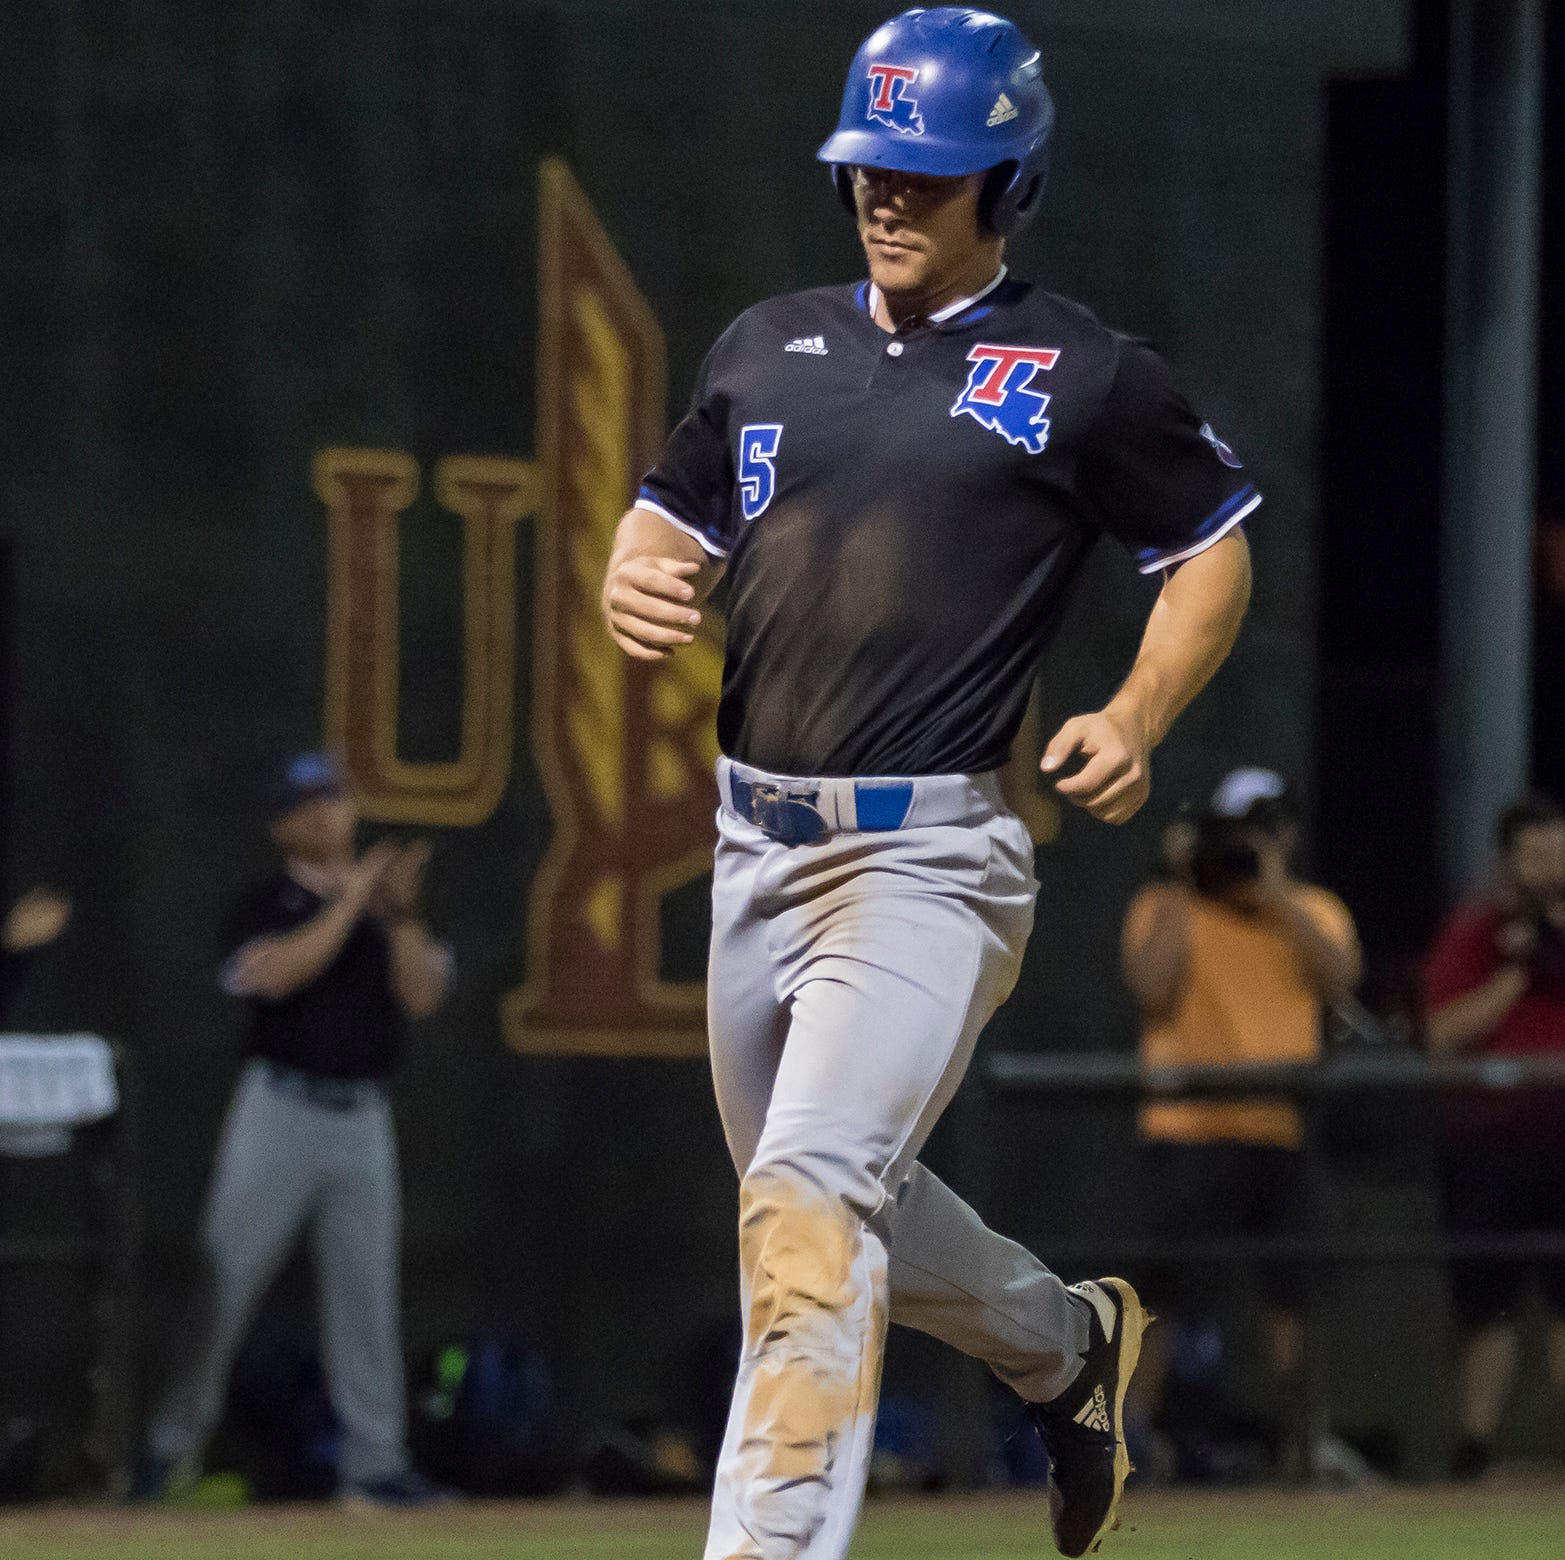 LA Tech bashes No. 15 LSU to snap long losing streak in series